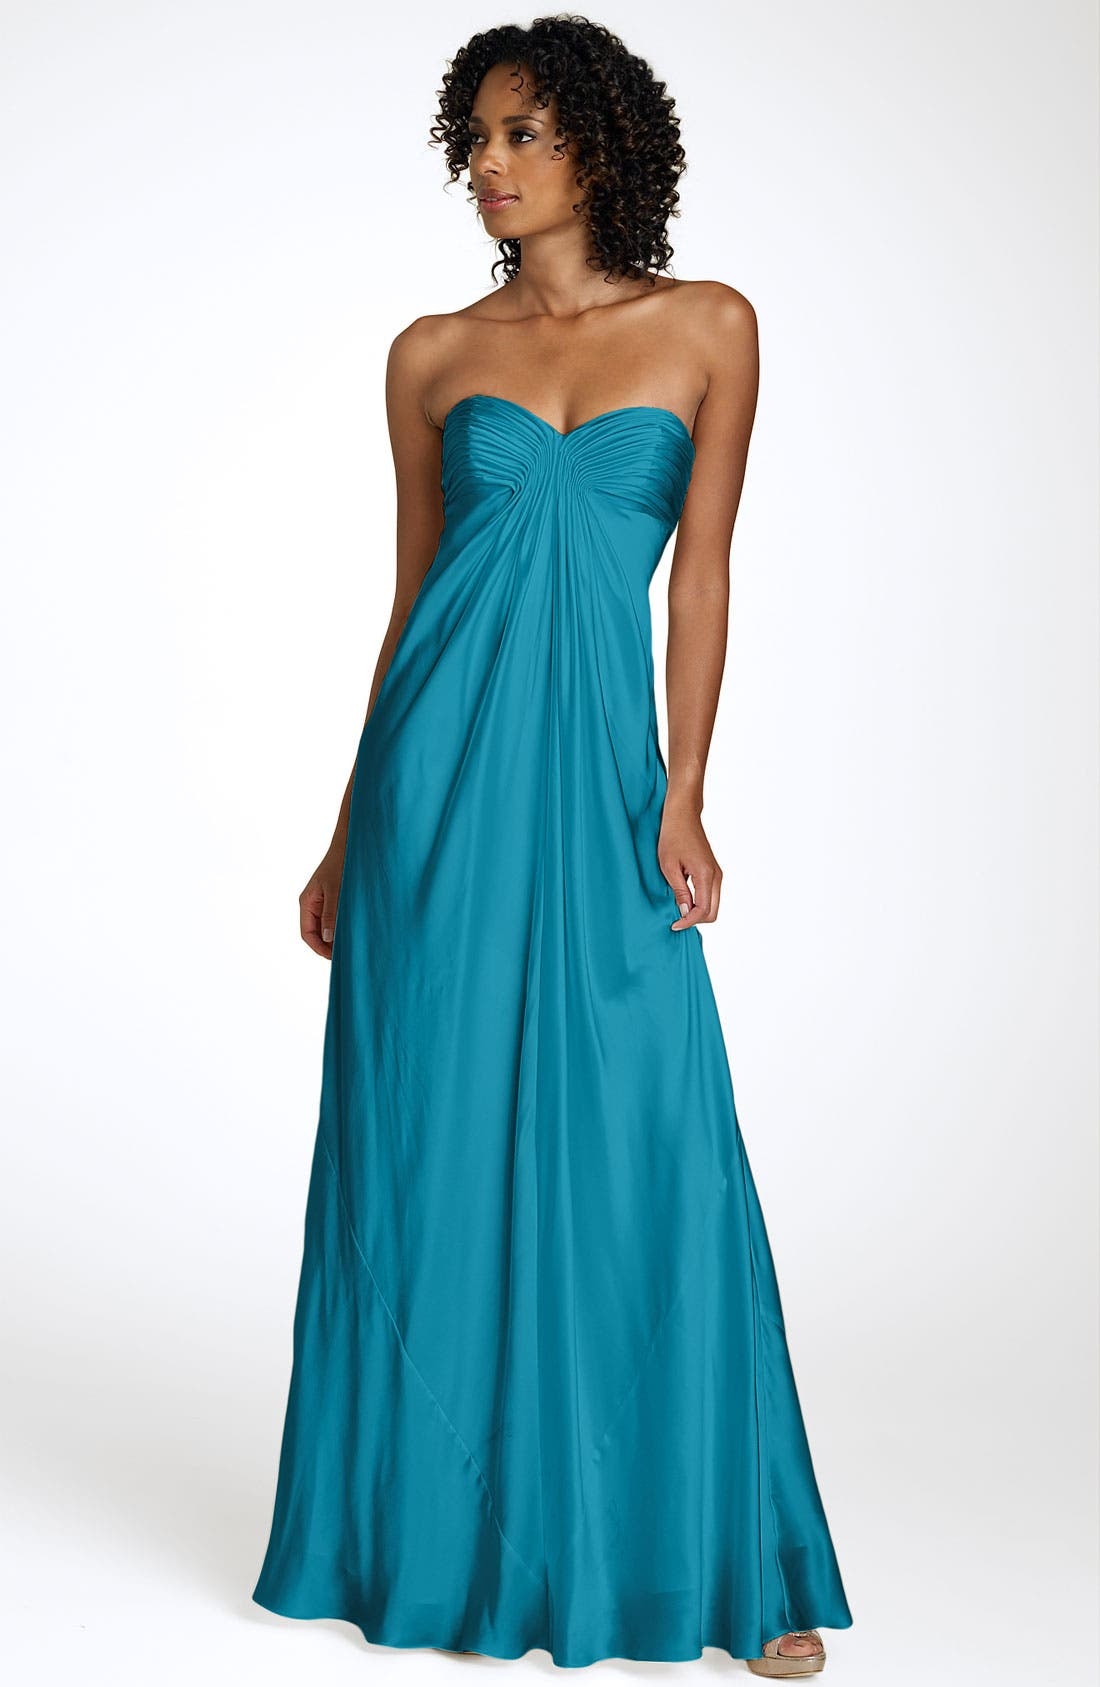 Main Image - Laundry by Shelli Segal Strapless Charmeuse Gown